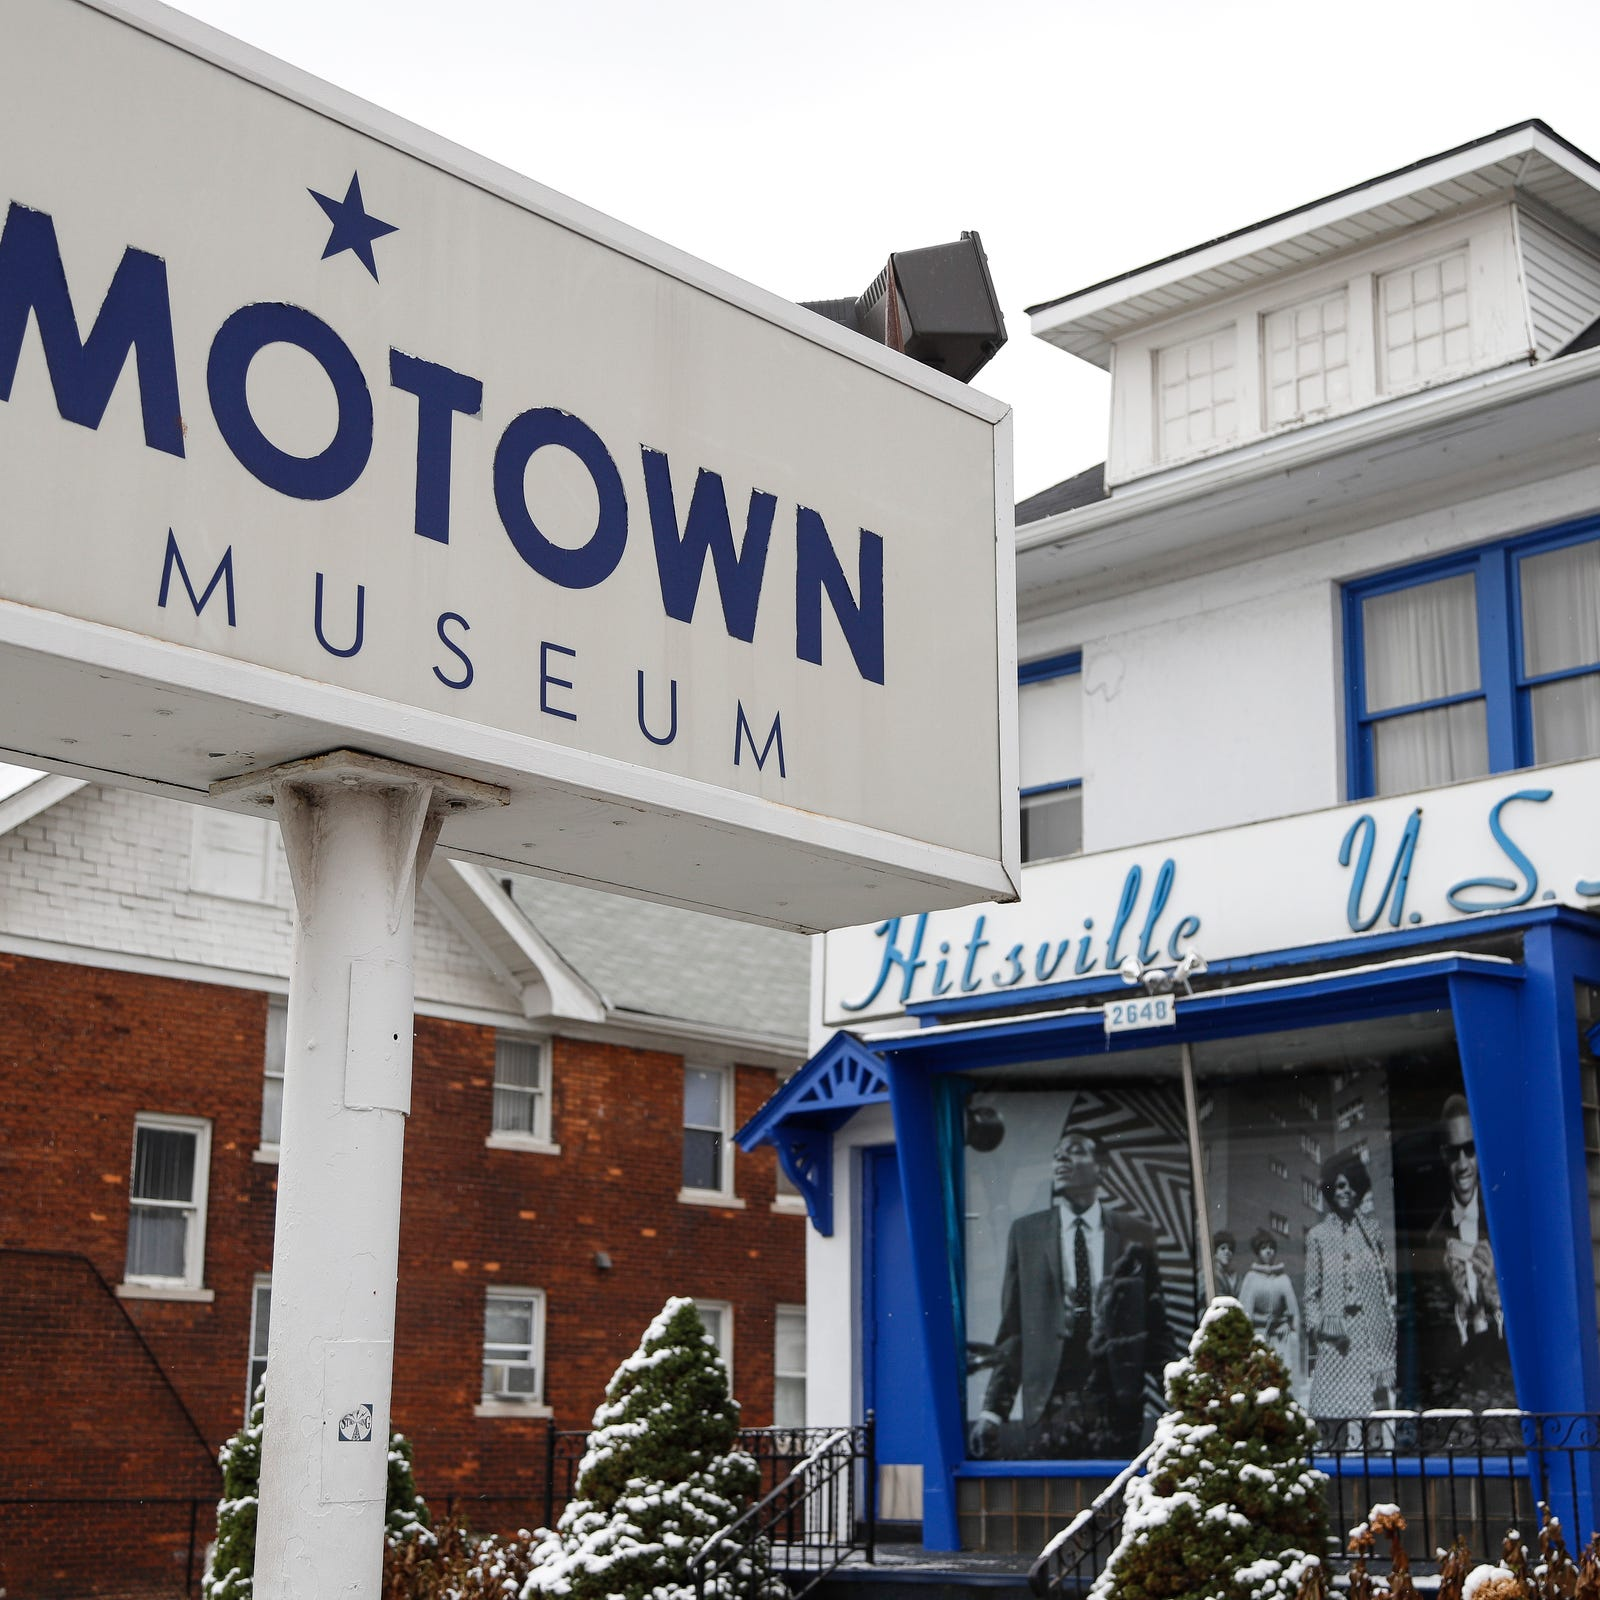 Detroit's Motown Museum expansion: Expect a big 2019 for Hitsville